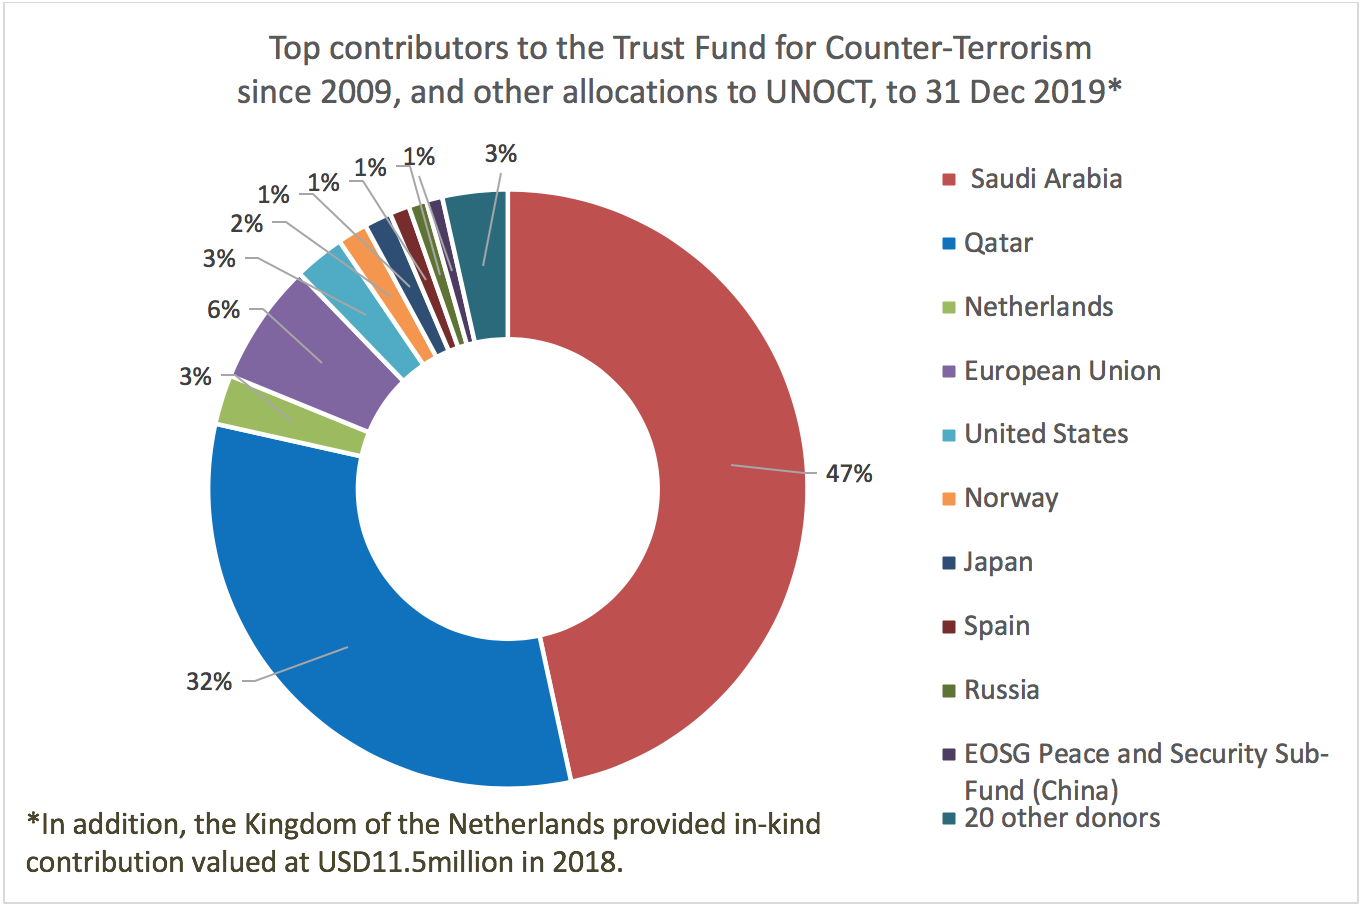 Top contributors to the trust fund for counter-terrorism